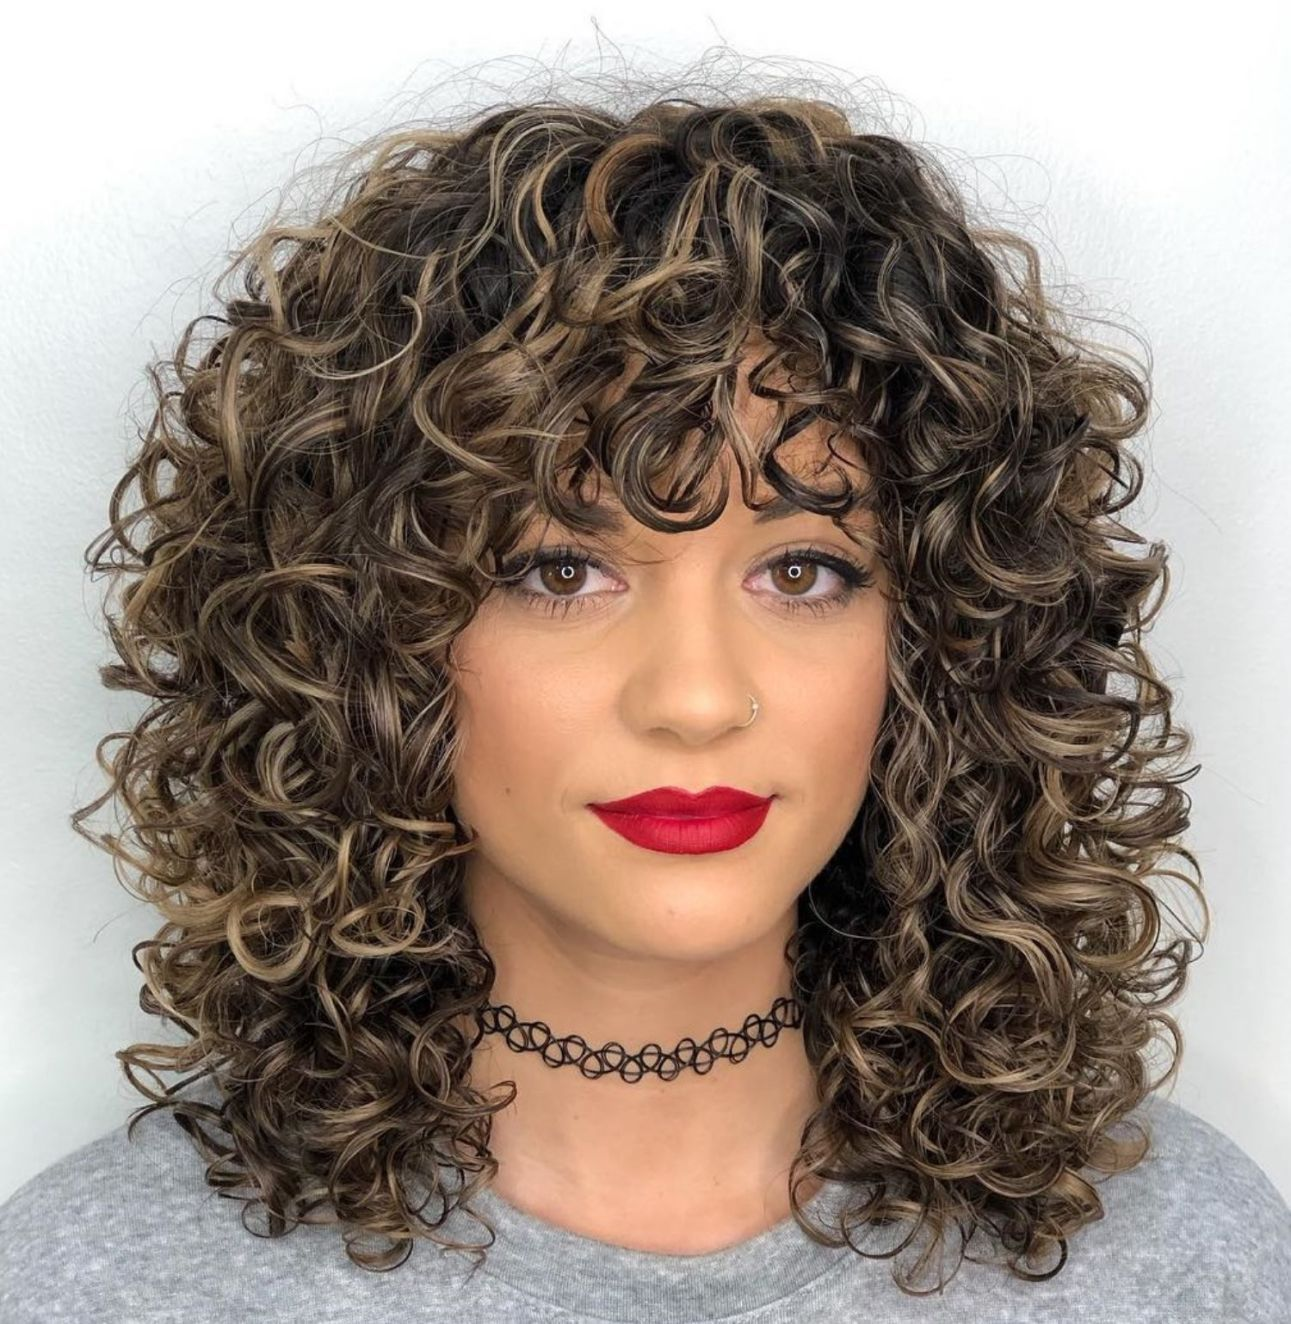 Mid Length Curly Hairstyle With Curly Bangs Medium Curly Hair Styles Curly Hair Styles Naturally Curly Hair Styles